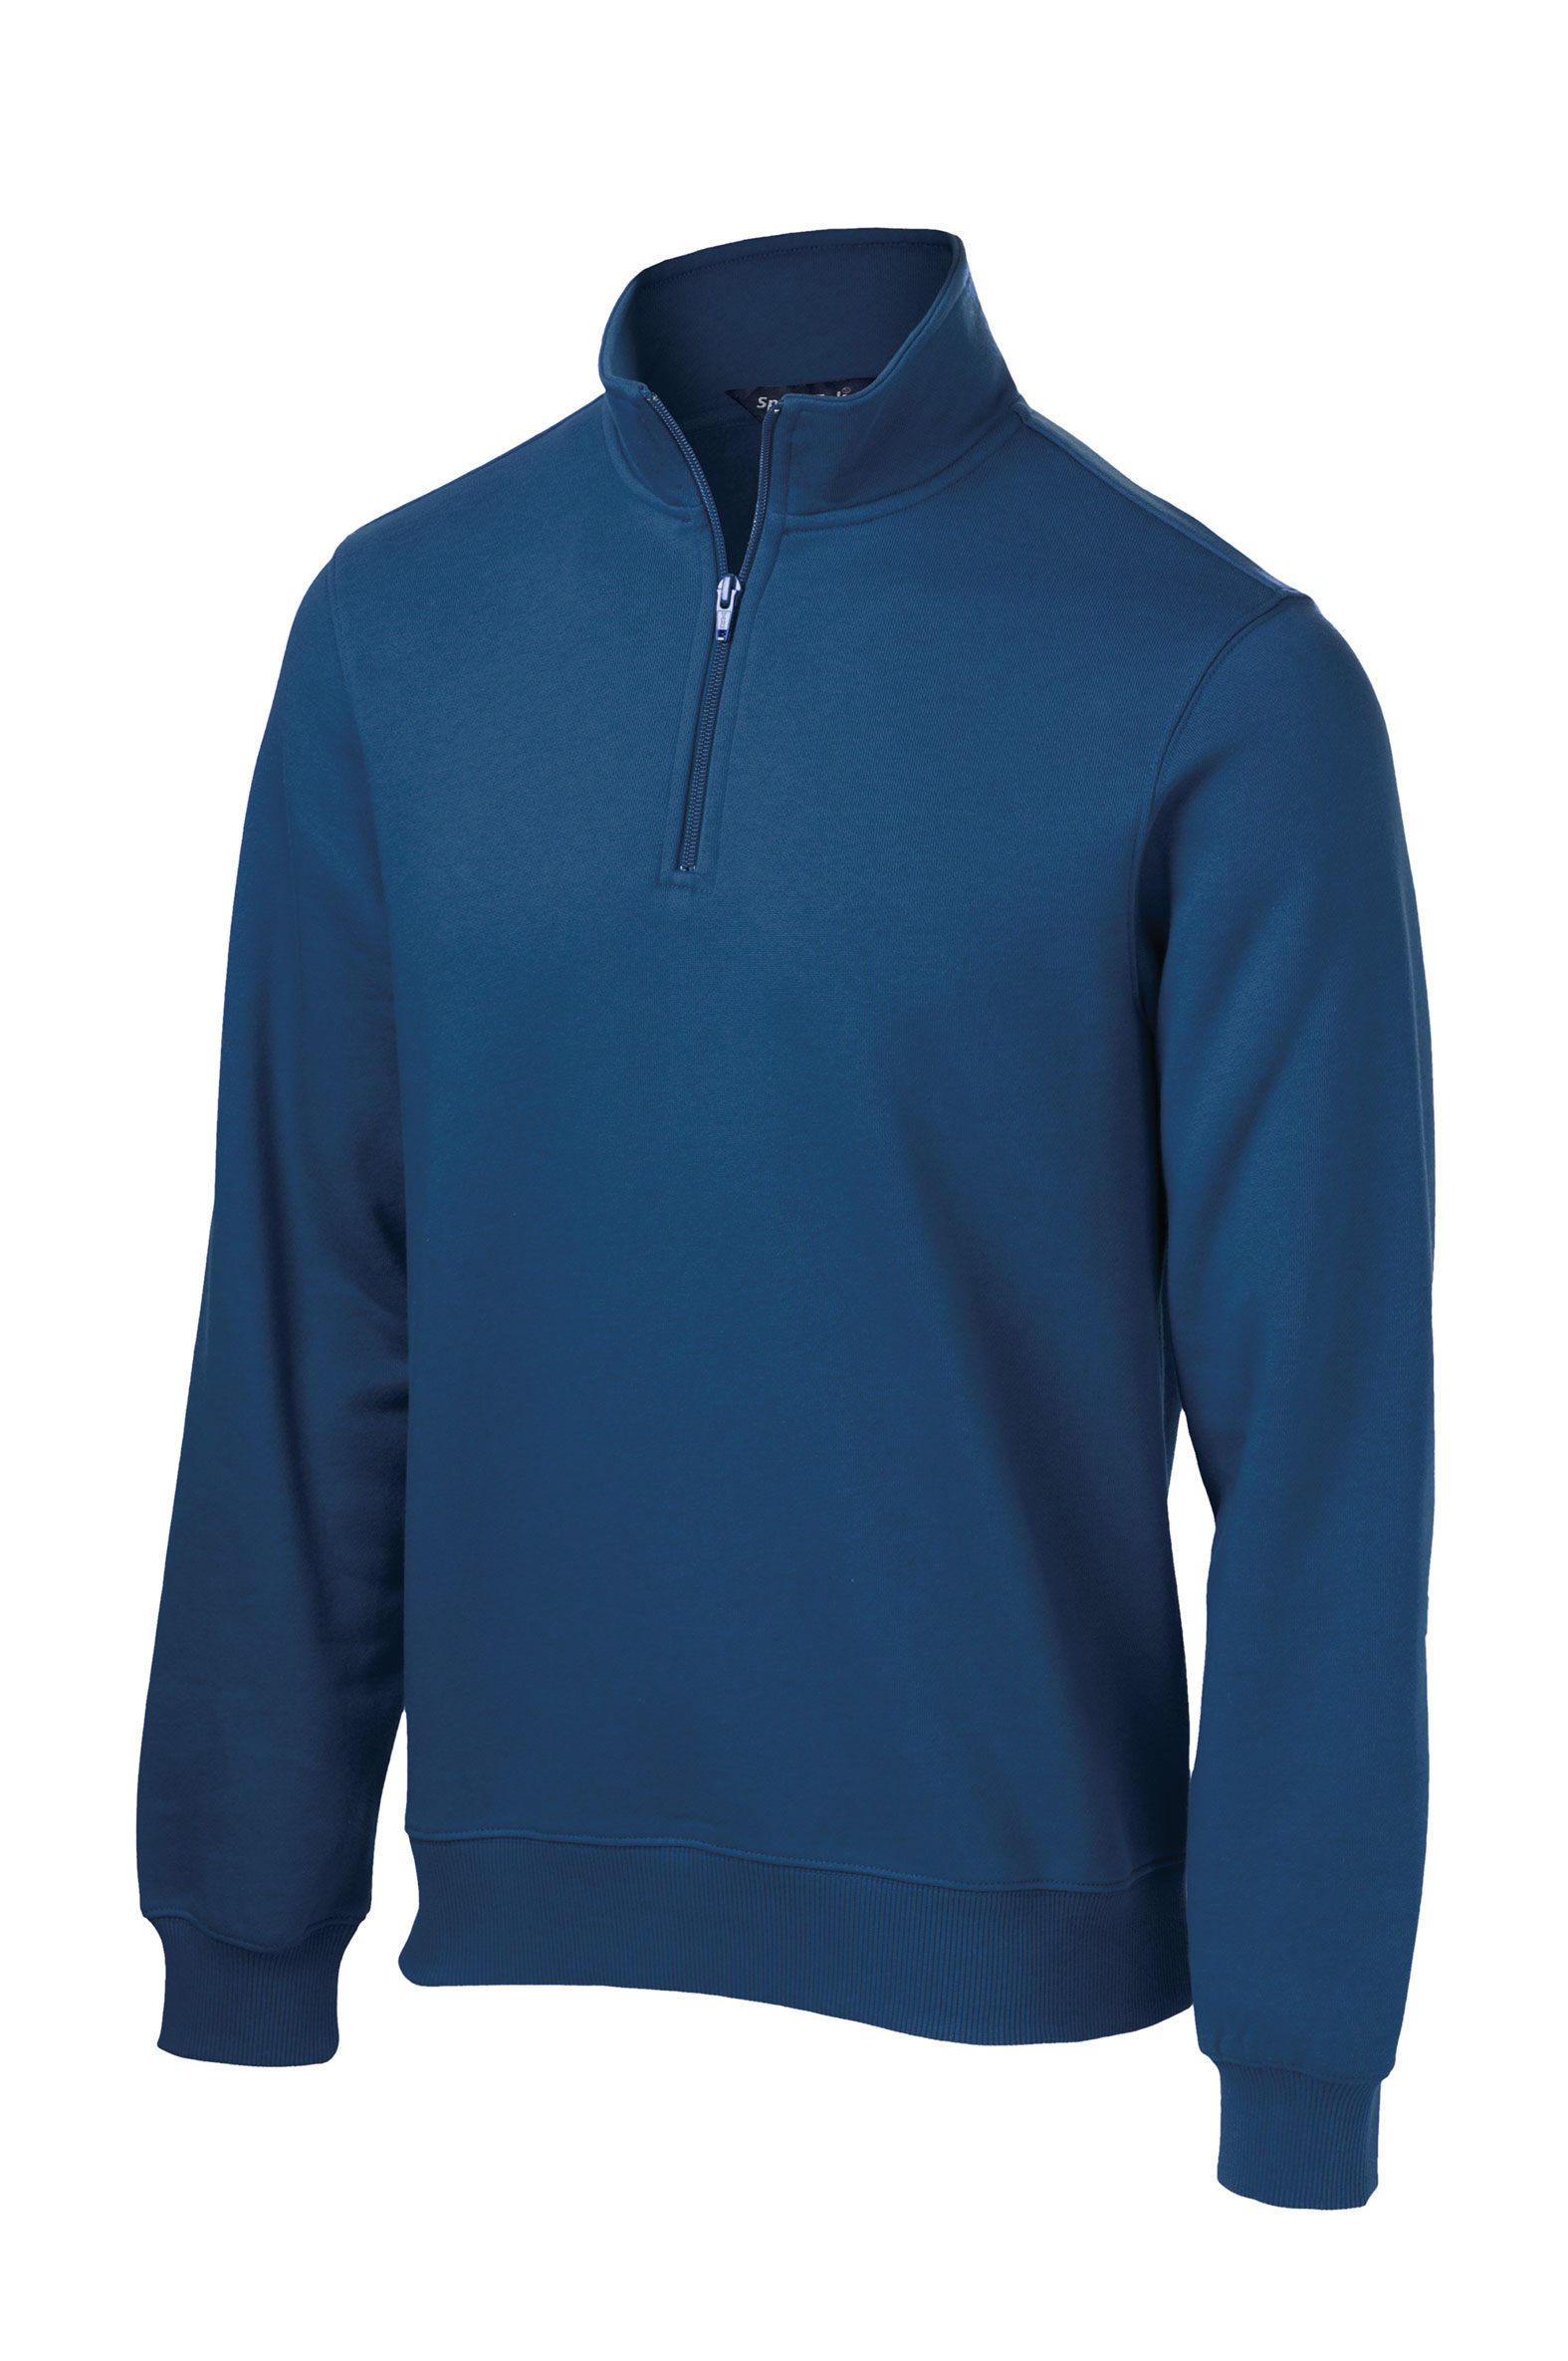 Mens Tall Sport-Tek® 1/4 Zip Sweatshirt